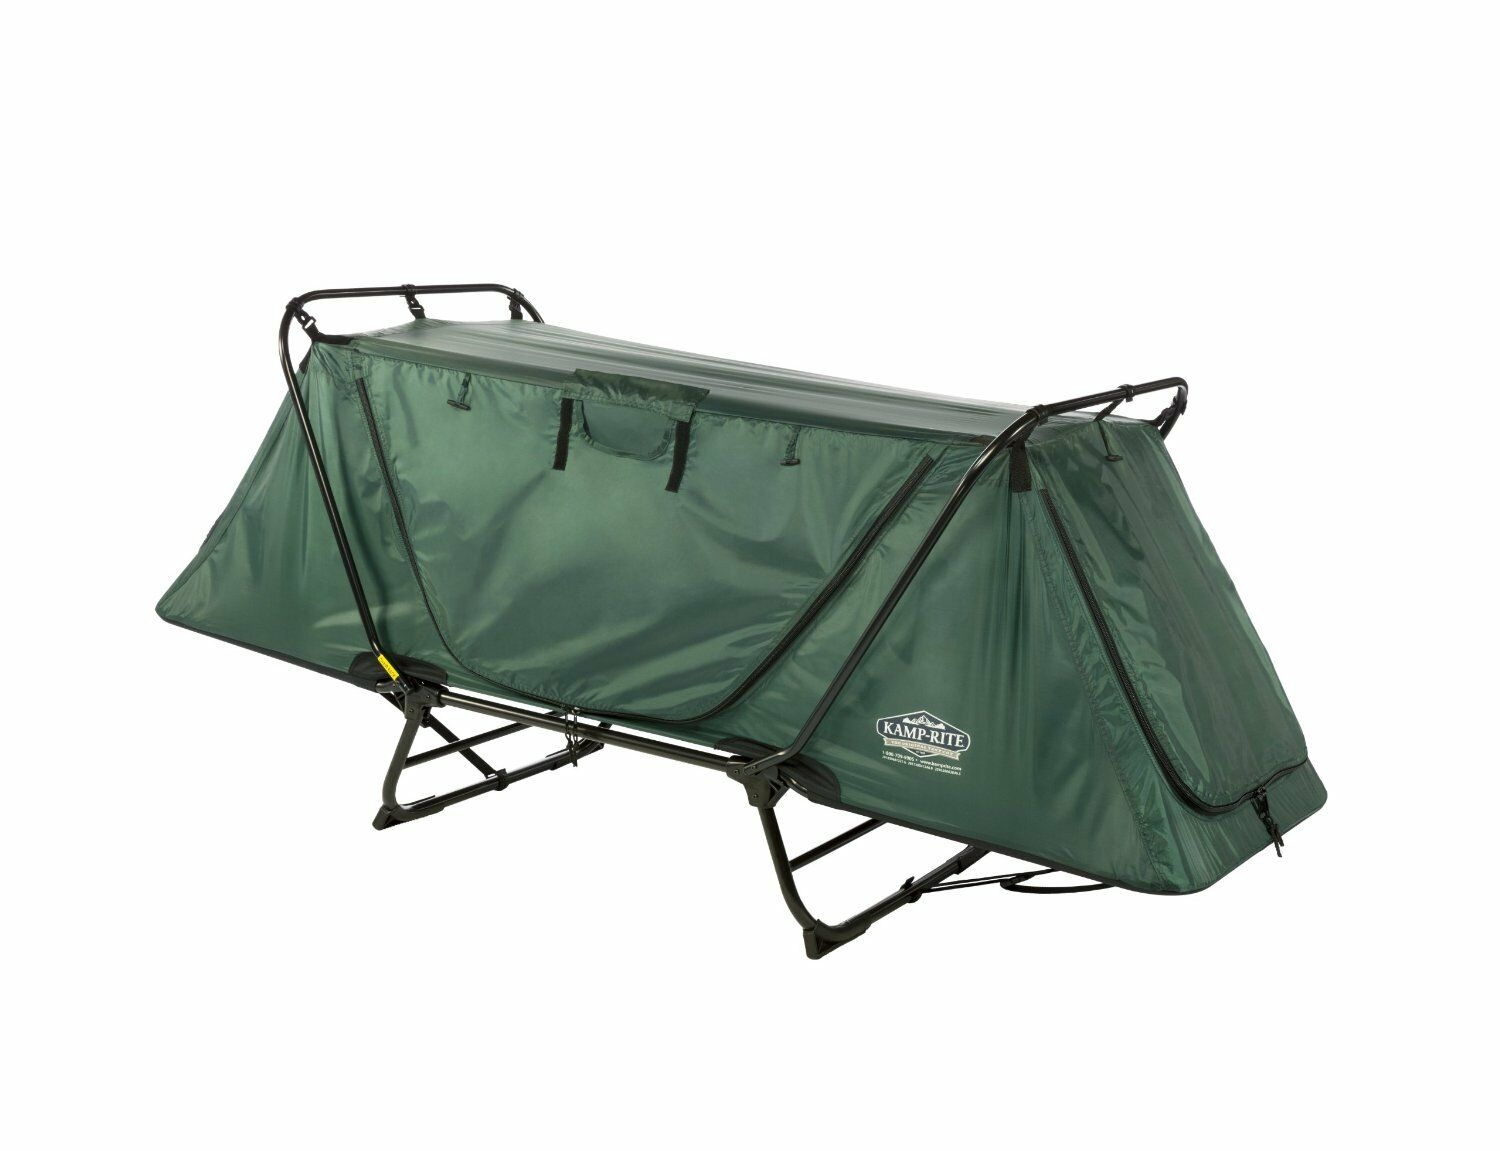 Kamprite One Person Outdoor Camping Compact Tent Cot w  Storage Bag